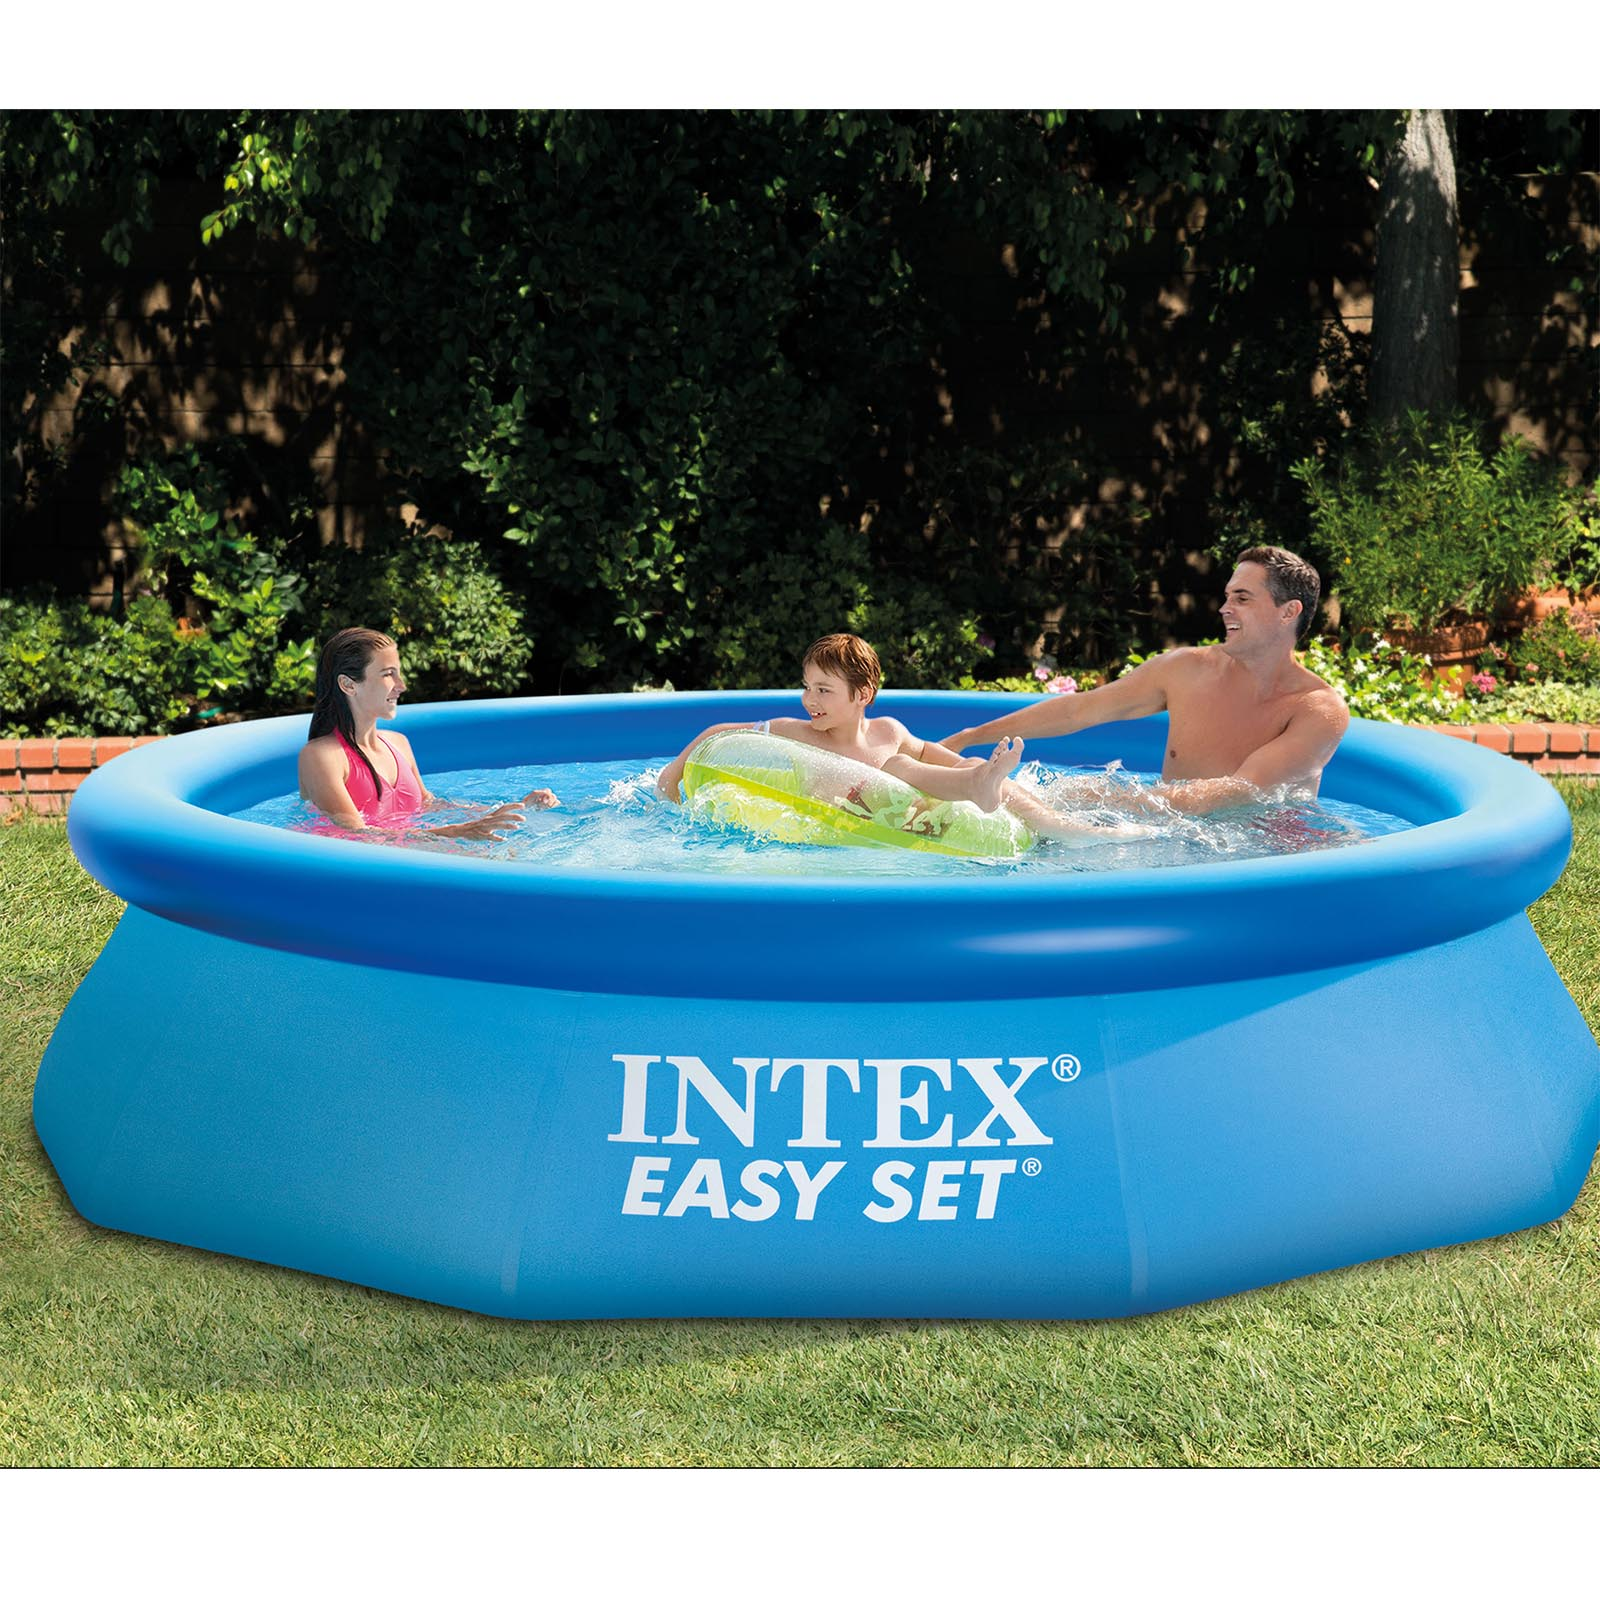 Intex 10' x 30 Easy Set Inflat...